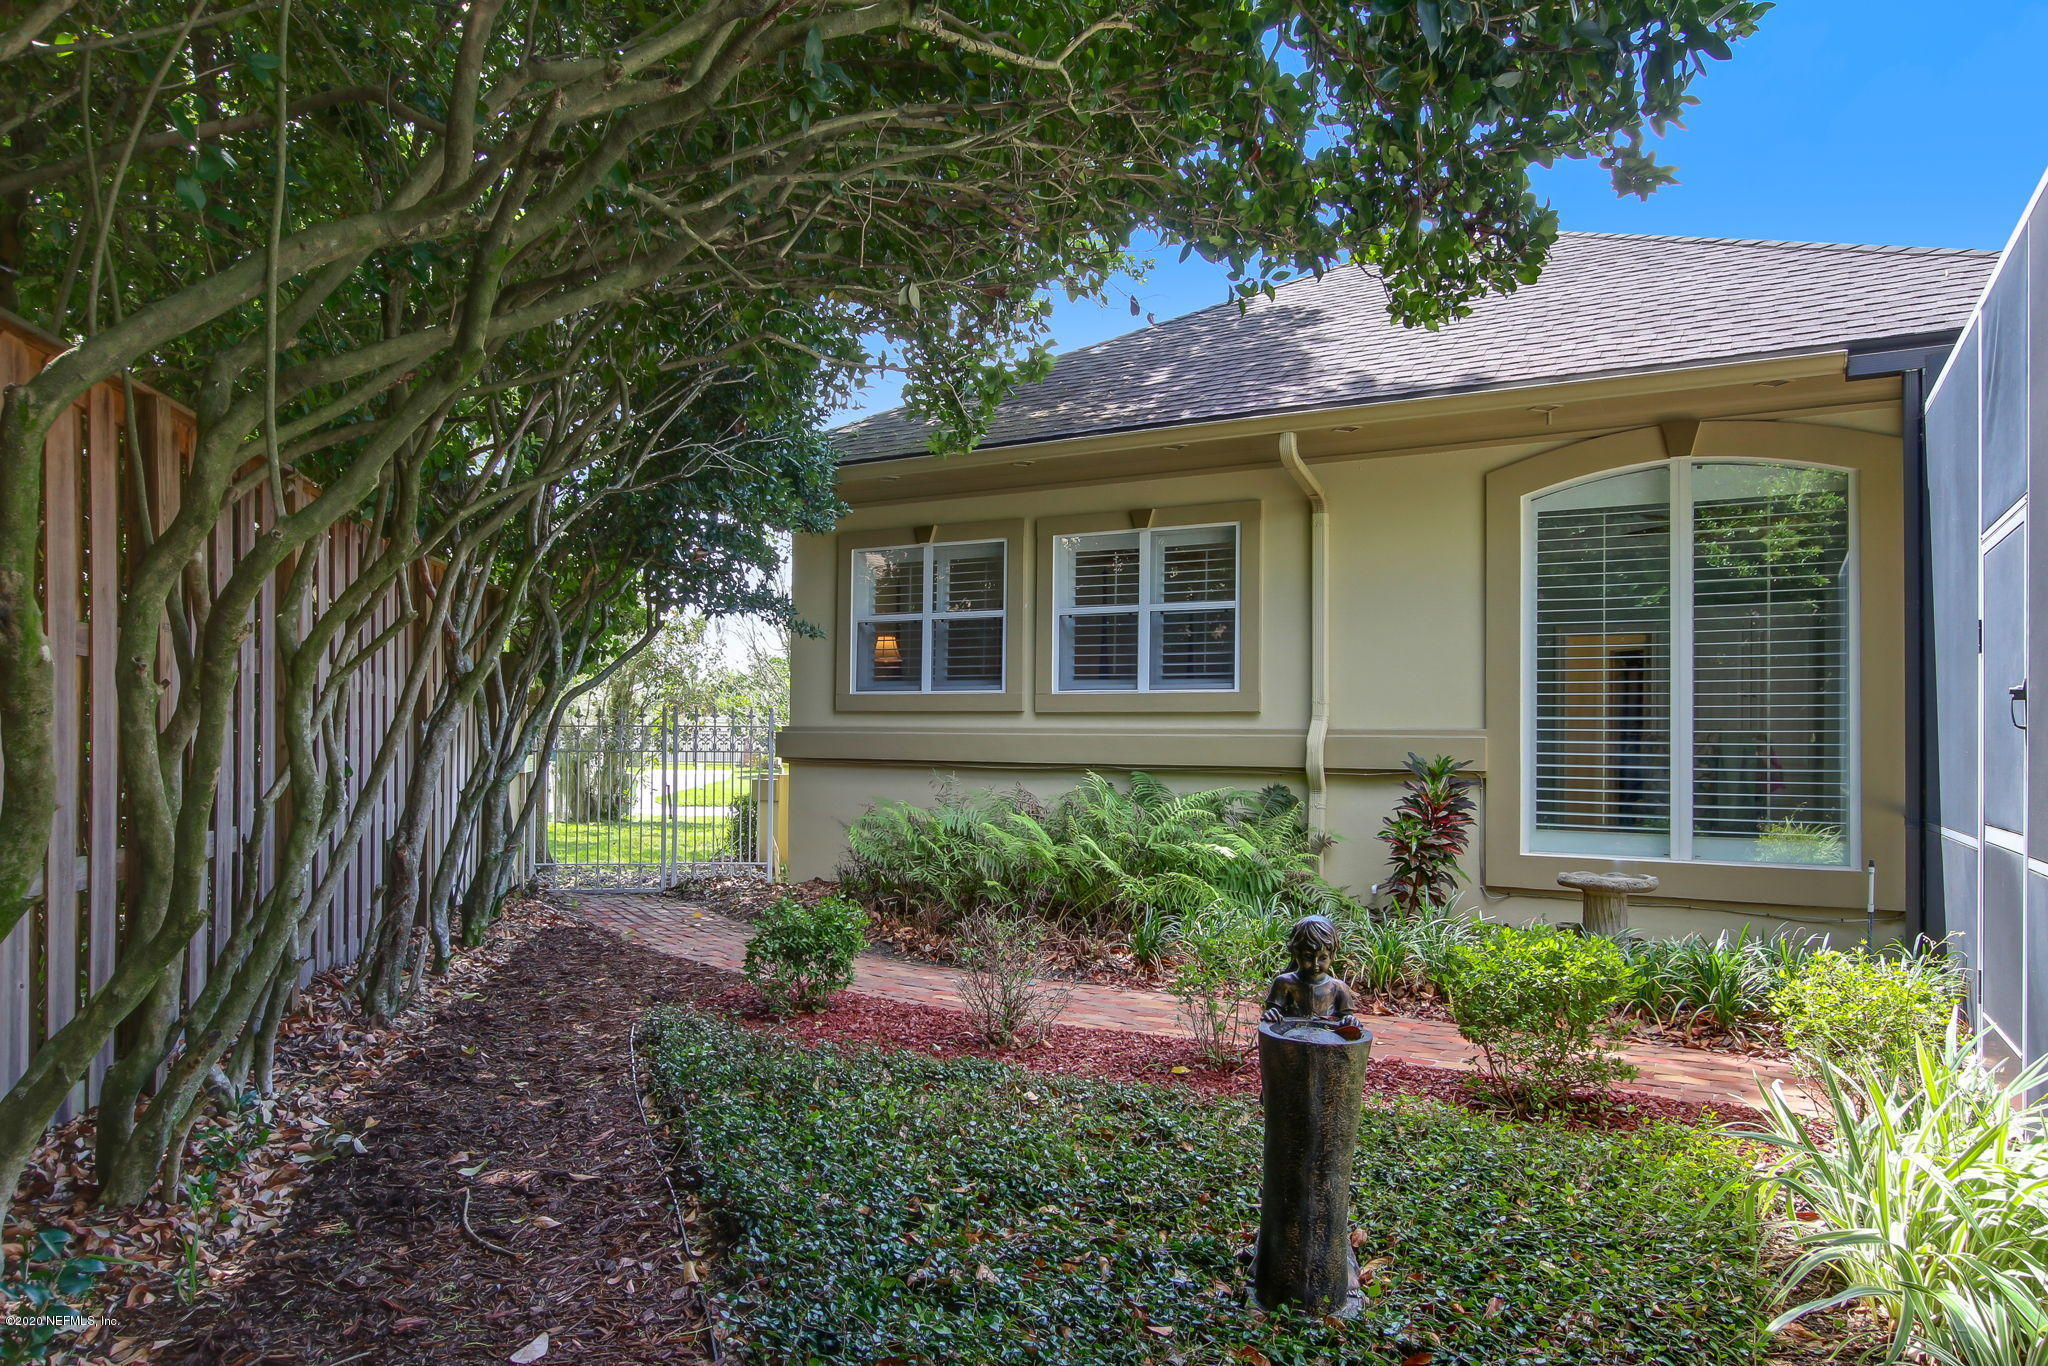 3629 SILVERY, JACKSONVILLE, FLORIDA 32217, 5 Bedrooms Bedrooms, ,4 BathroomsBathrooms,Residential,For sale,SILVERY,1052057